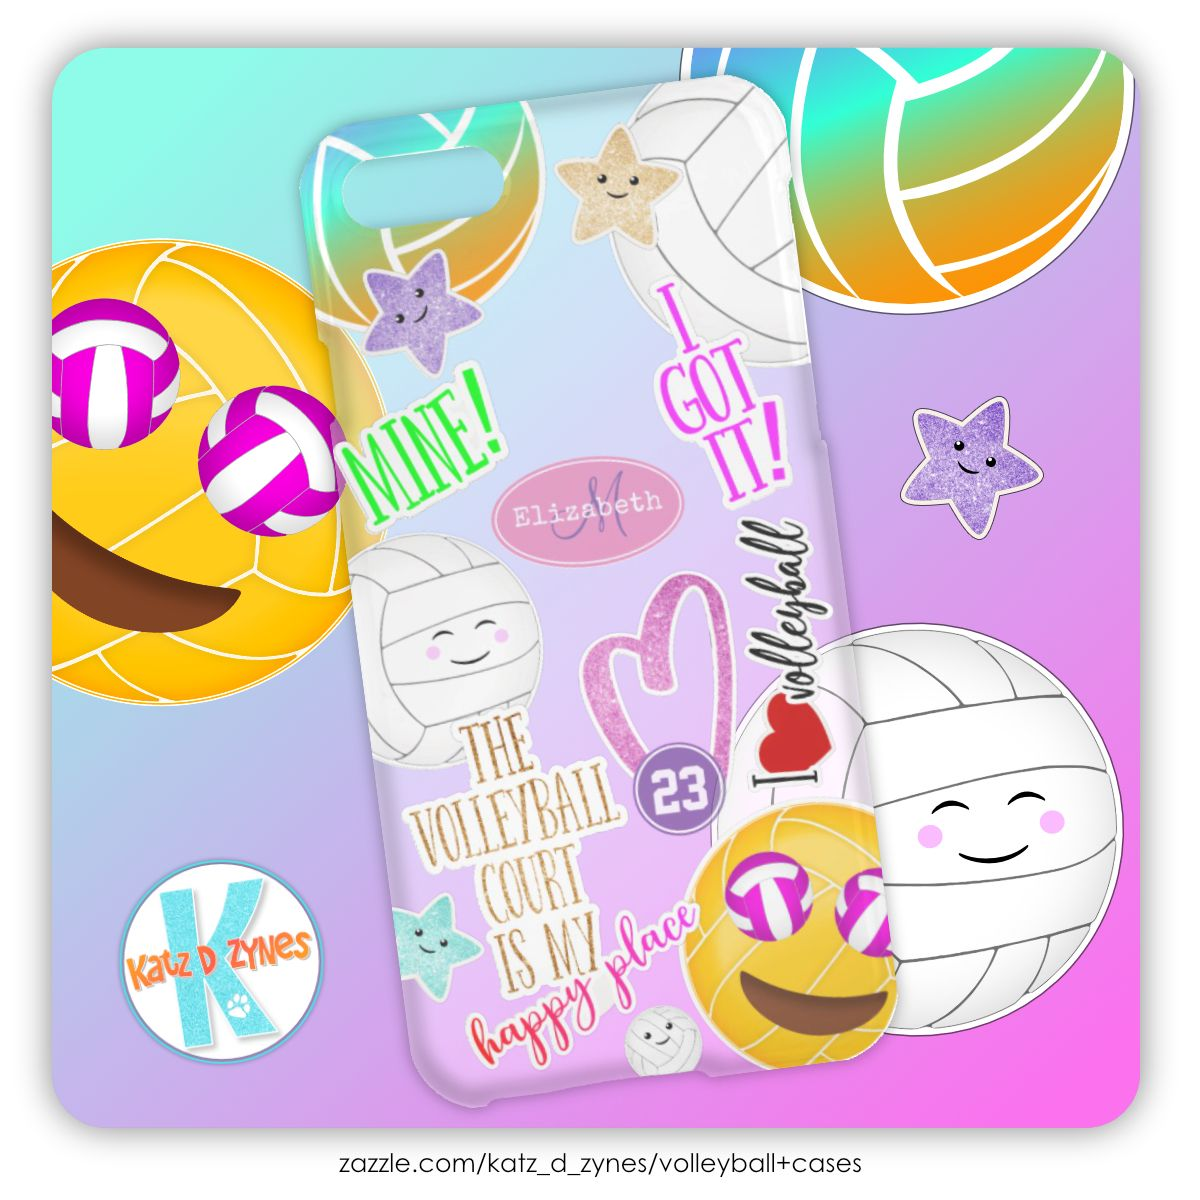 I Love Volleyball Emoji Kawaii Cute Stickered Look Uncommon Iphone Case Zazzle Com Iphone Cases Clear Iphone Case Volleyball Player Gifts